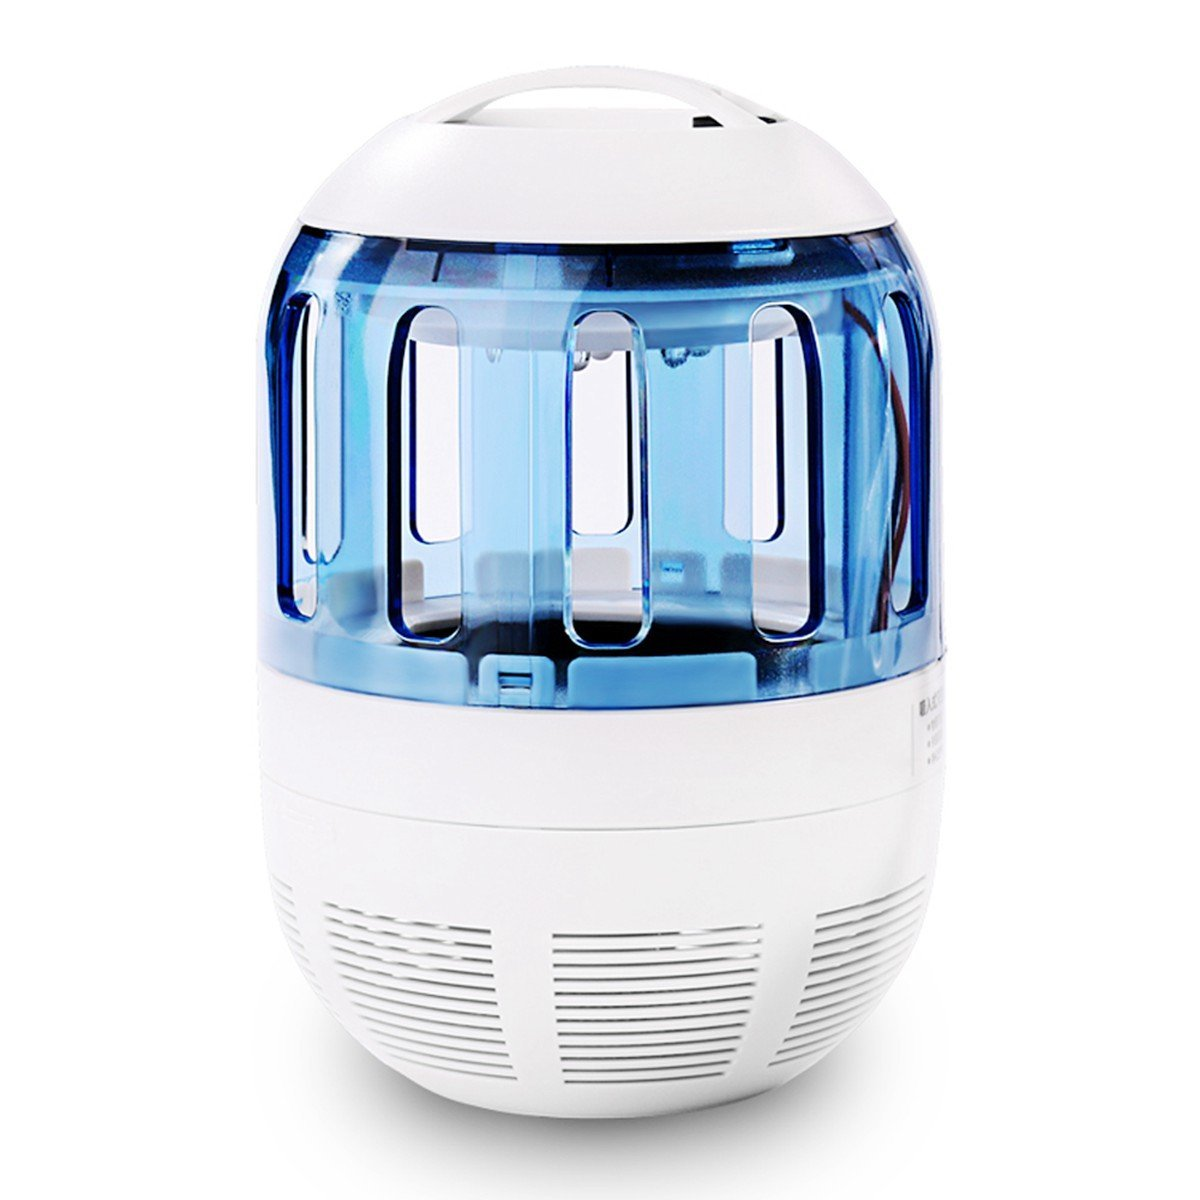 Top 10 Best Mosquito Killer Machines Review for Yard and Garden